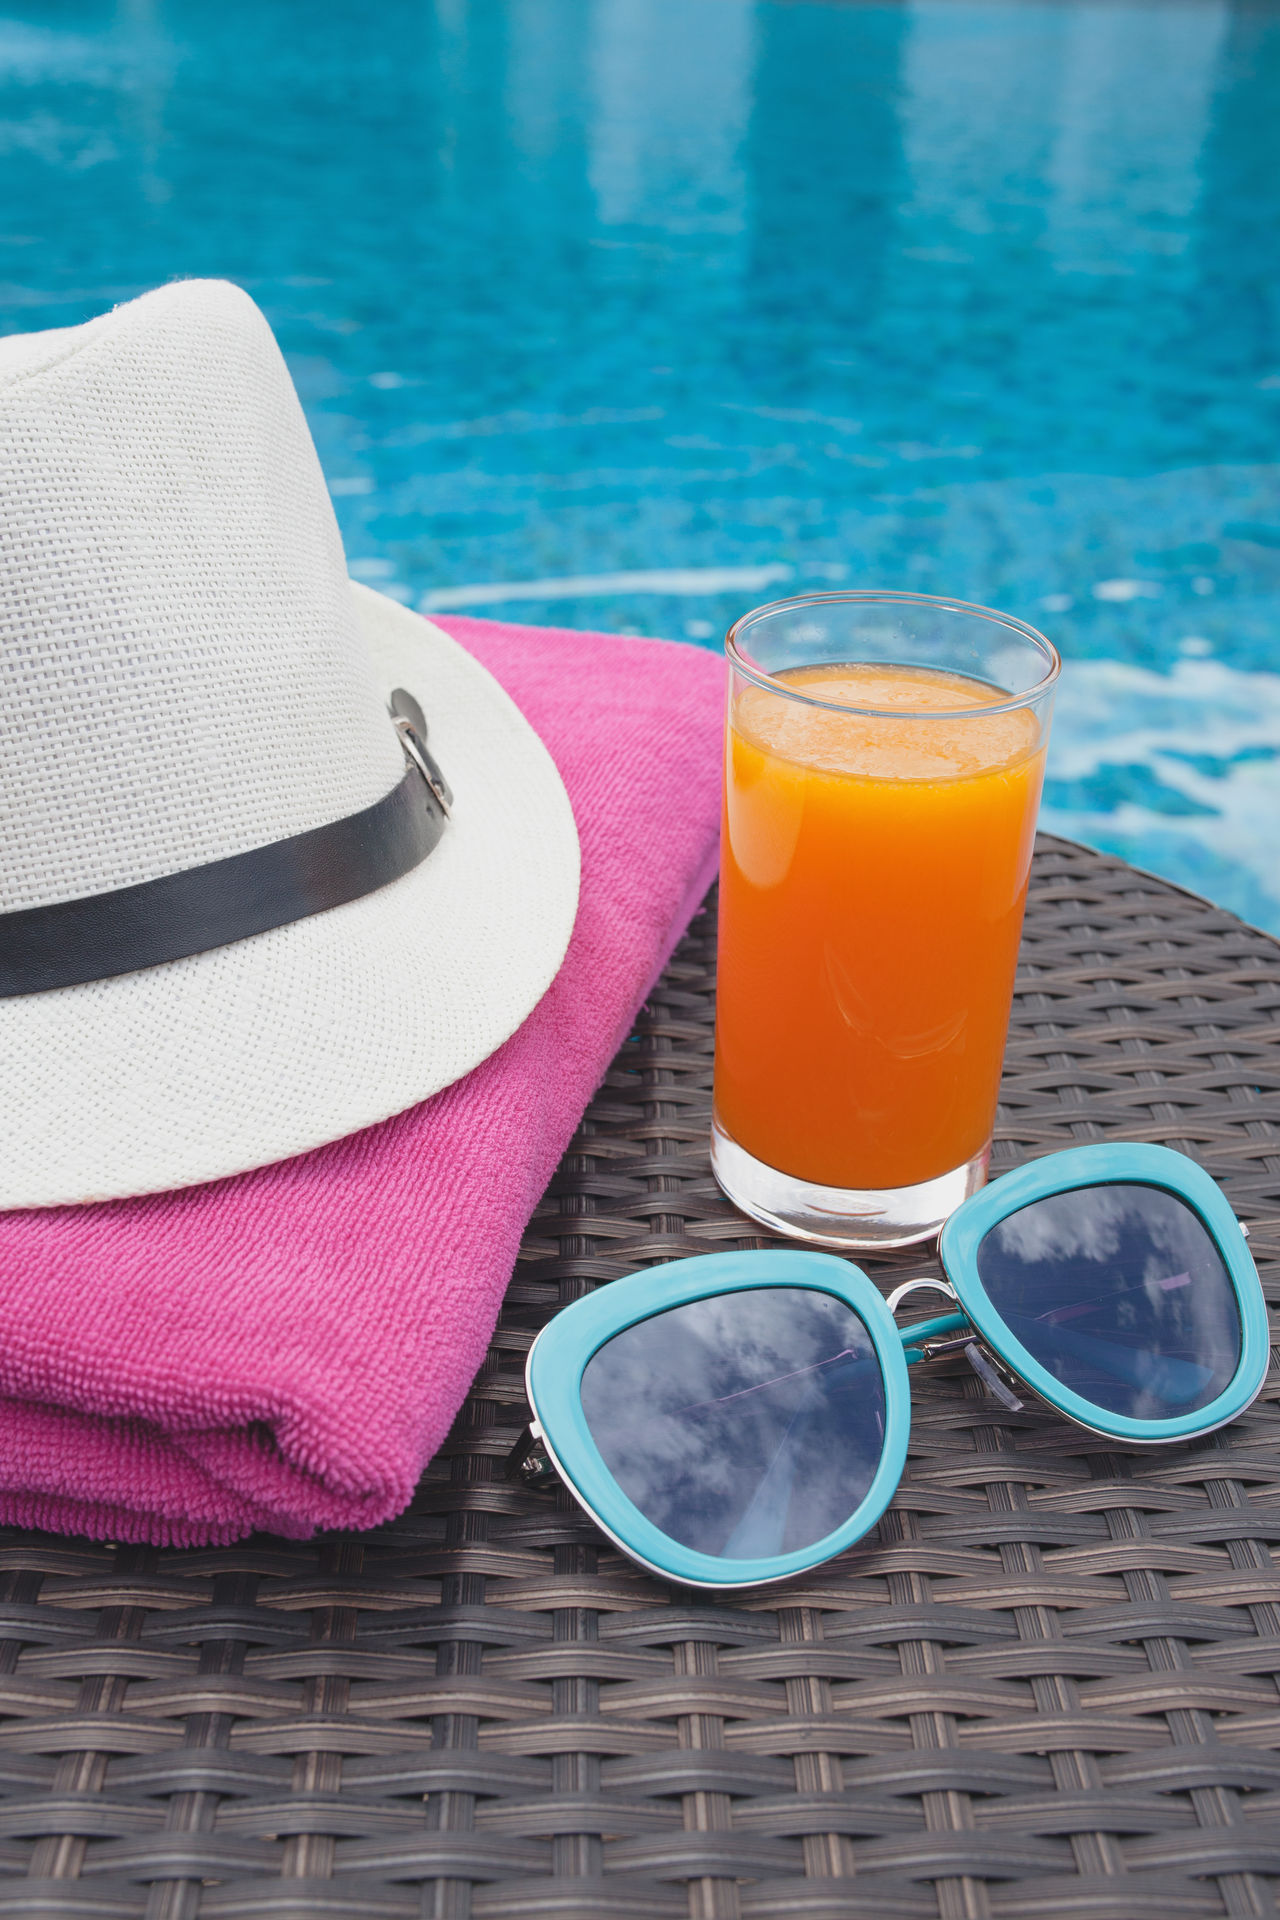 Close-up Day Drink Drinking Glass Drinking Straw Eyeglasses  Freshness No People Orange Juice  Outdoors Refreshment Still Life Summer Sun Hat Sunglasses Swimming Pool Vacations Water